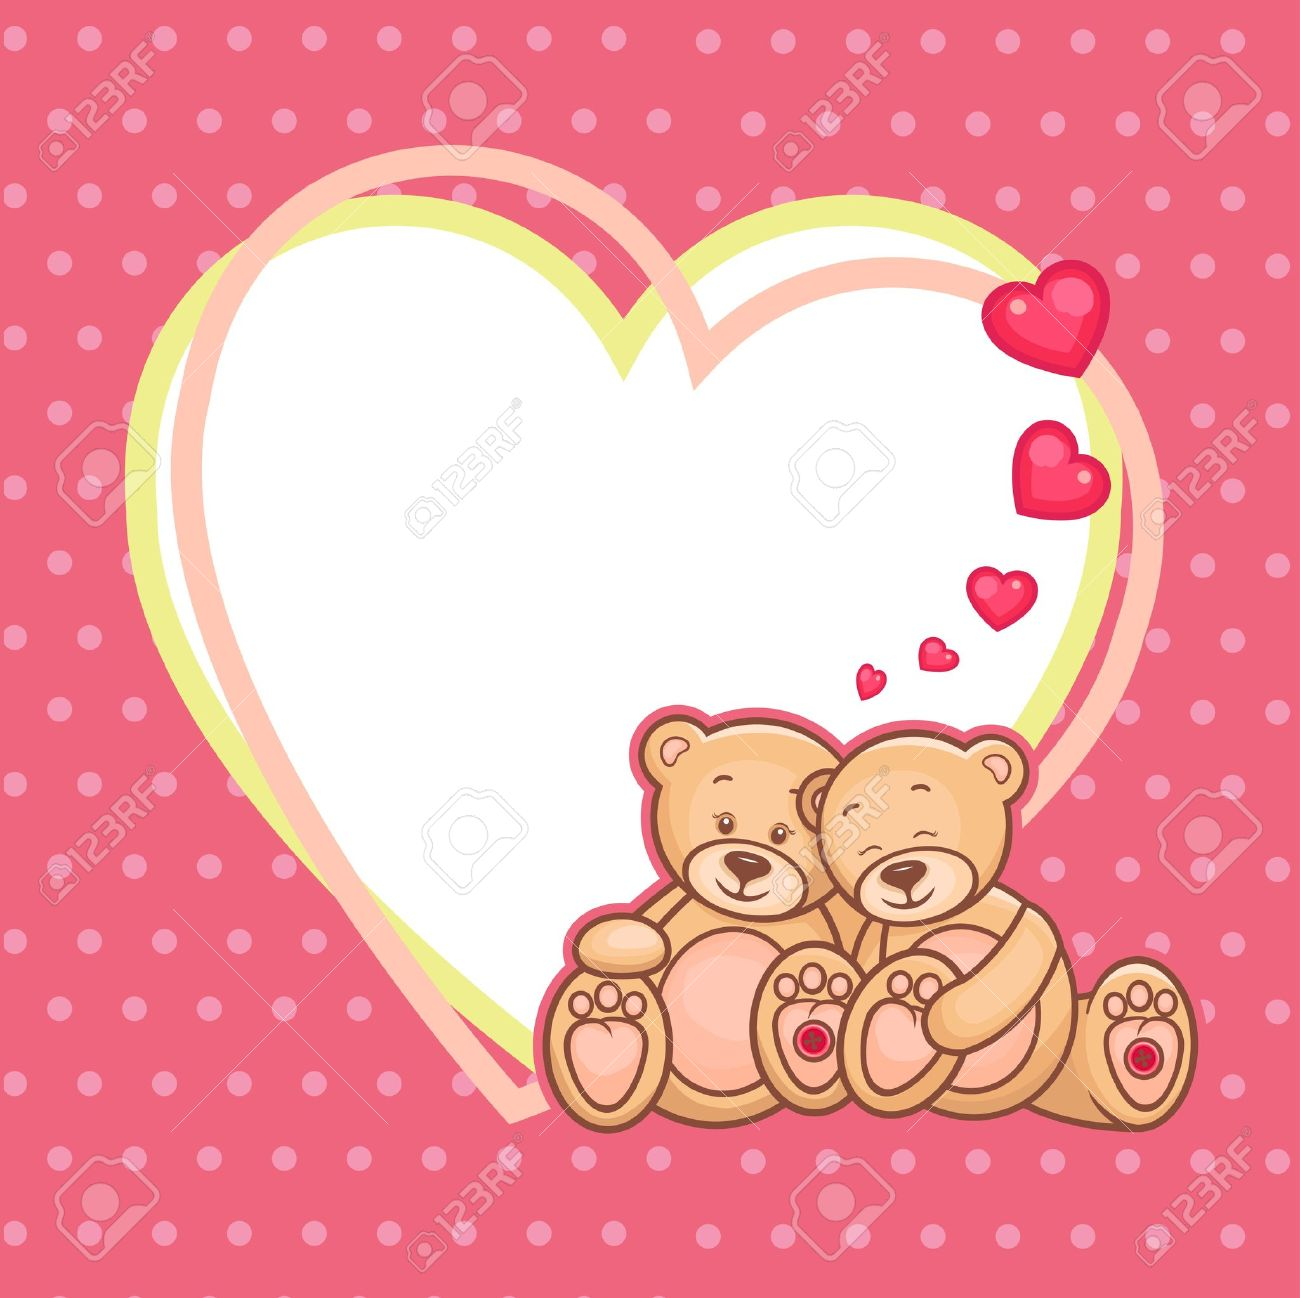 Cute Teddy Bears And Big Heart Royalty Free Cliparts, Vectors, And ...